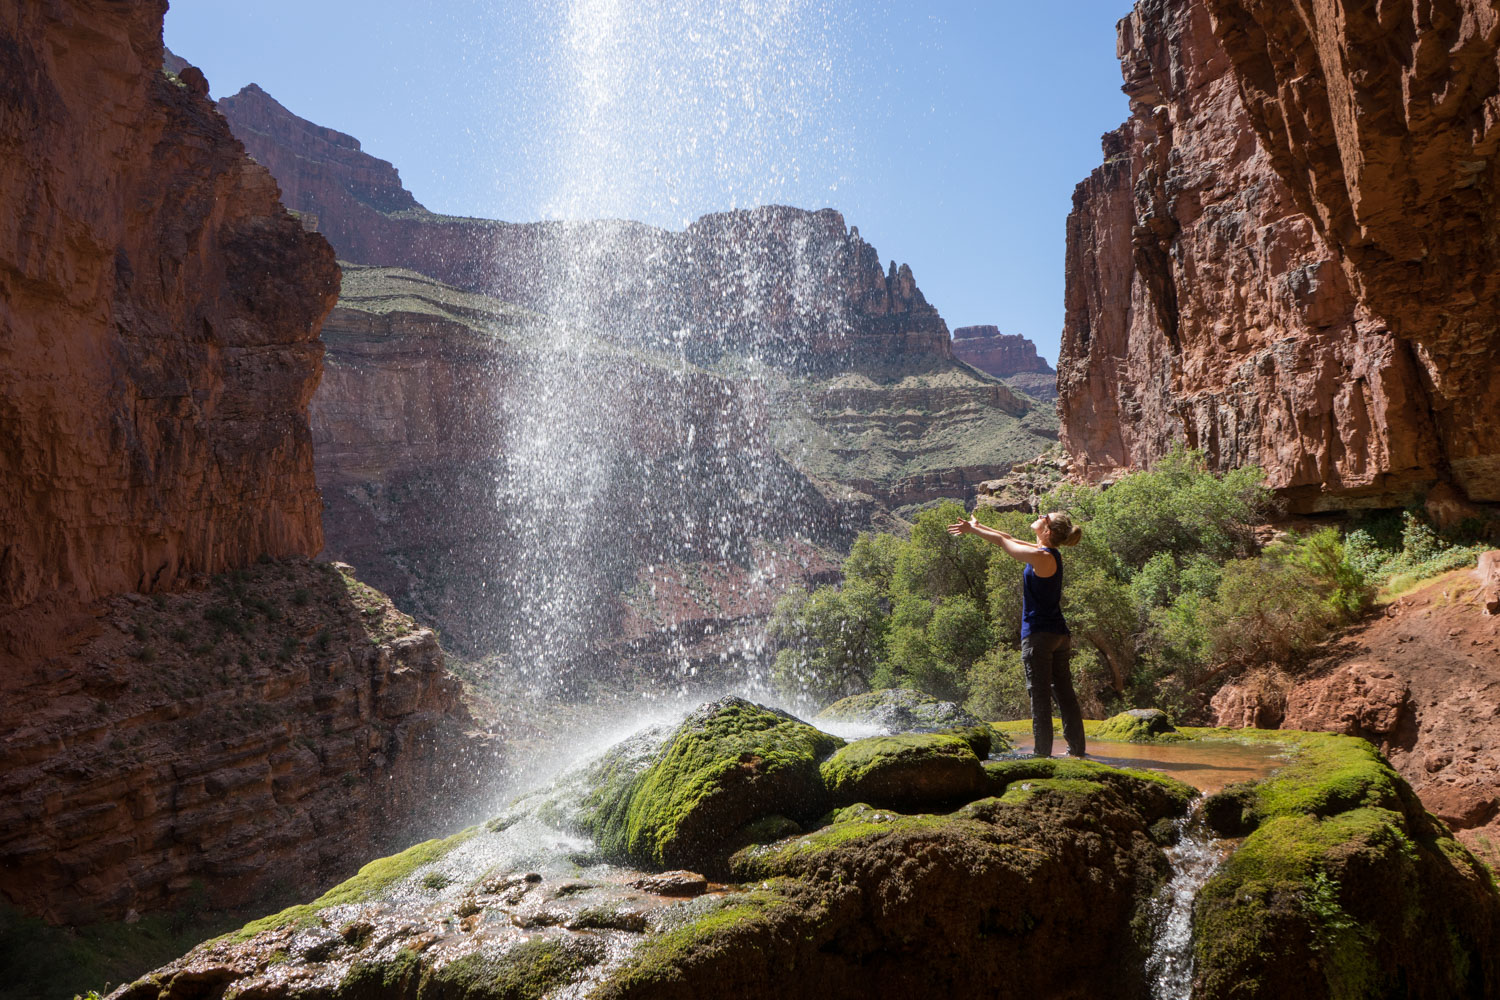 At Ribbon Falls in Arizona's Grand Canyon, a girl stands in a small pool and reaches for the waterfall.